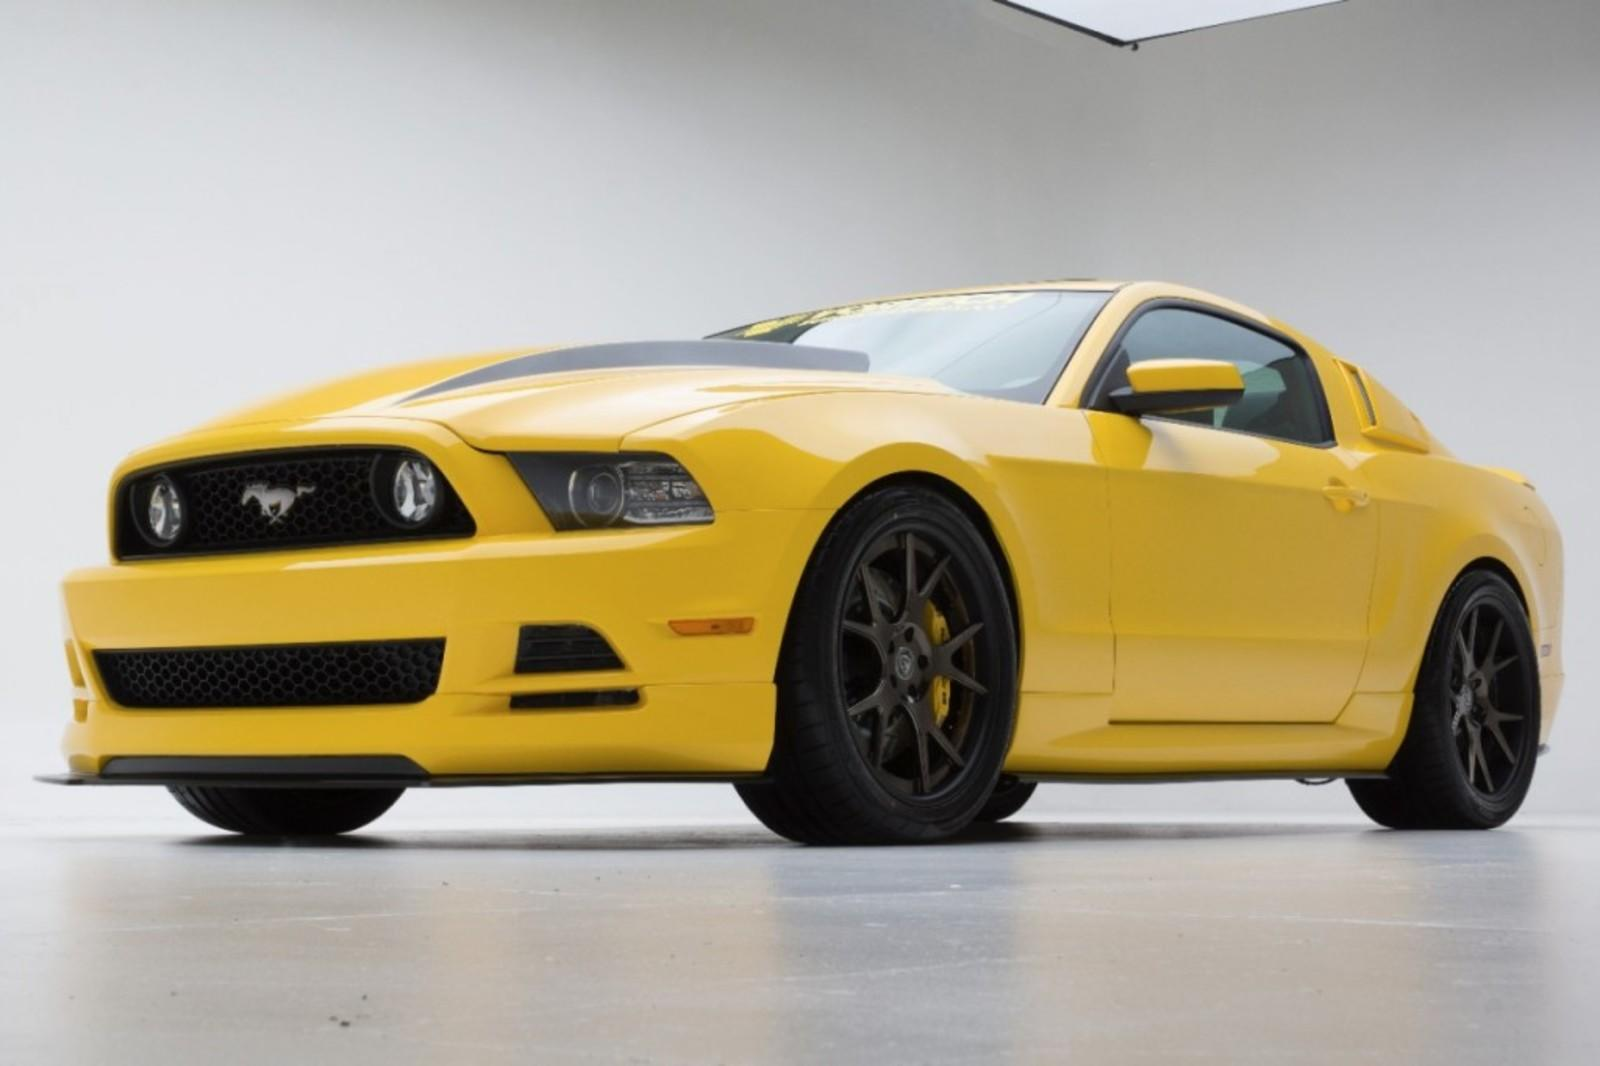 2014 Ford Mustang Gt Yellow Jacket Review Top Speed